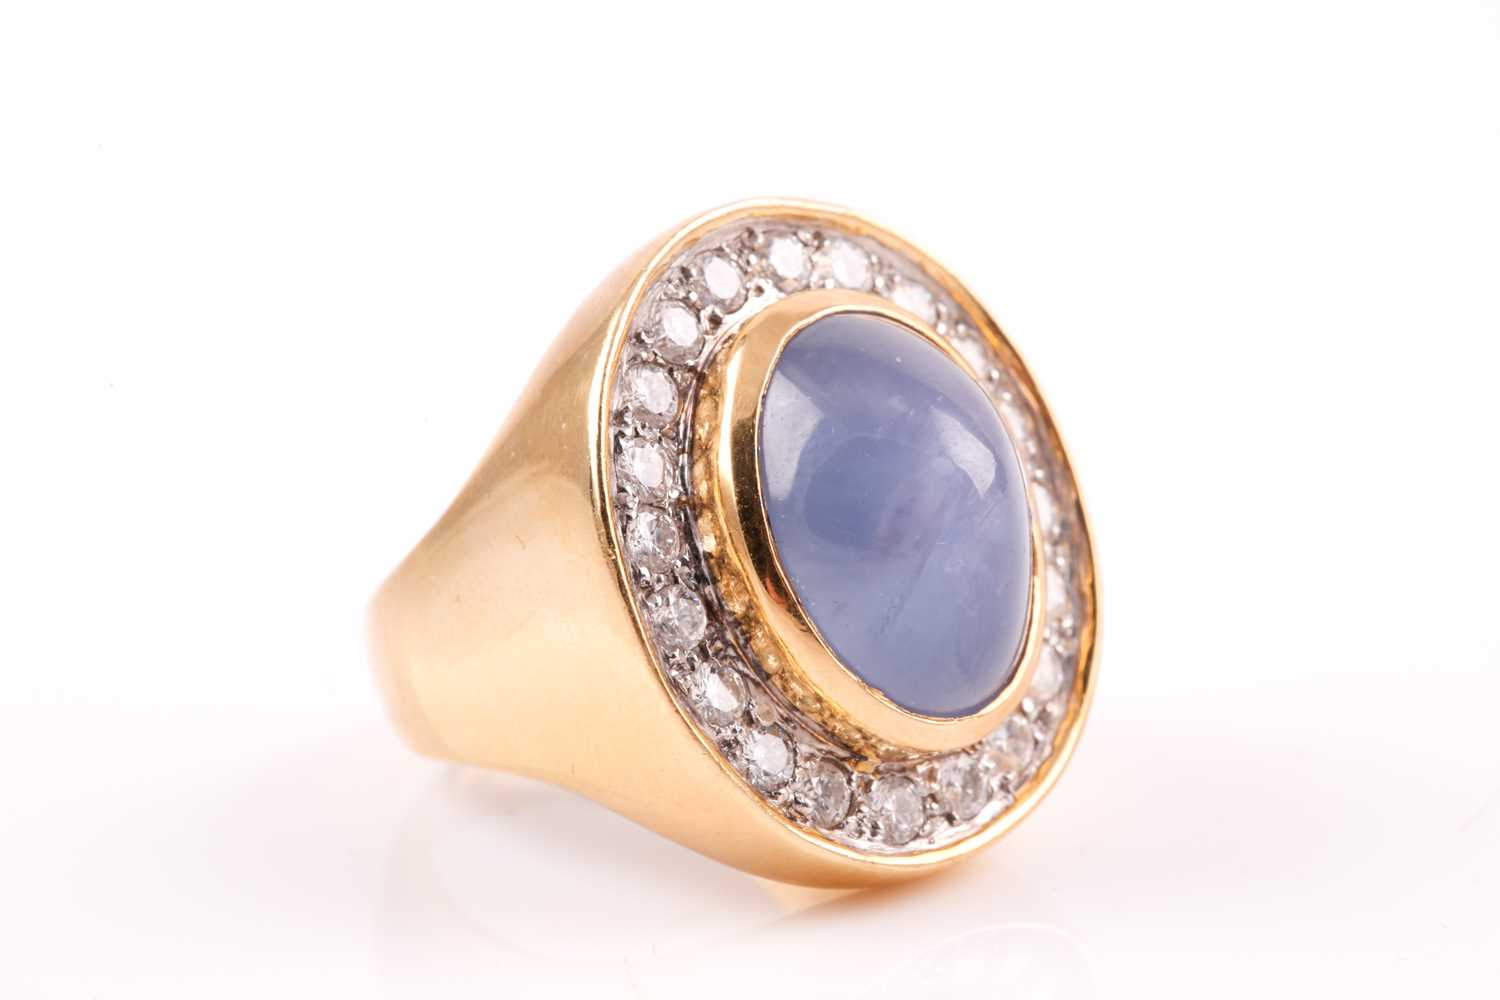 An 18ct yellow gold, diamond, and star sapphire cocktail ring, set with a domed cabochon sapphire, - Image 5 of 9